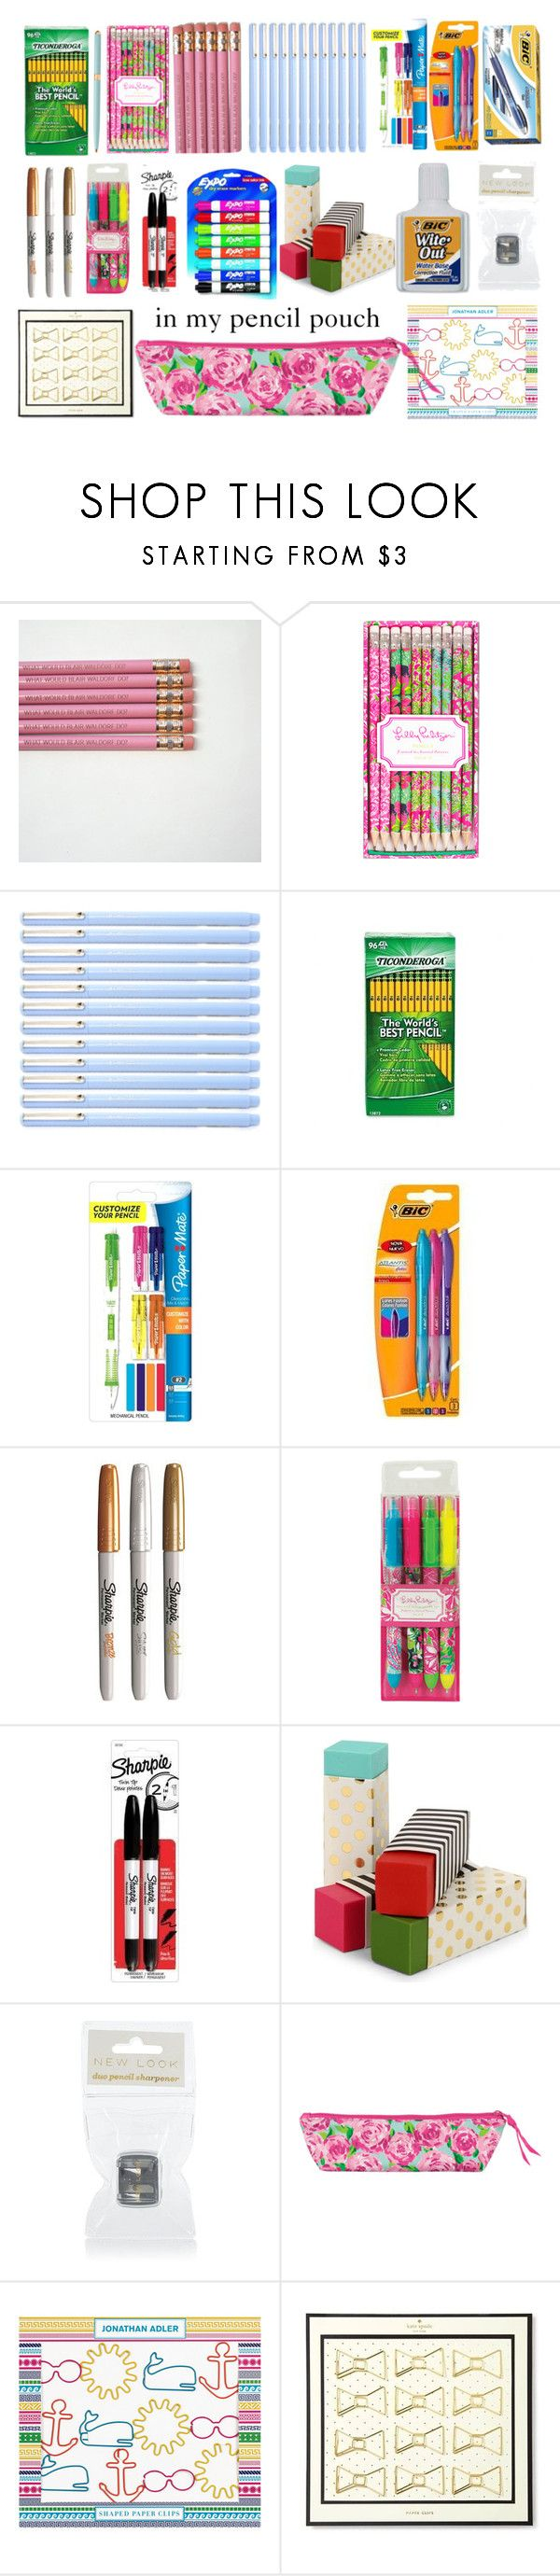 """""""In My Pencil Pouch"""" by sweetprep101 ❤ liked on Polyvore featuring Lilly Pulitzer, Dixon Ticonderoga, Paper Mate, Sharpie, Kate Spade and Jonathan Adler"""